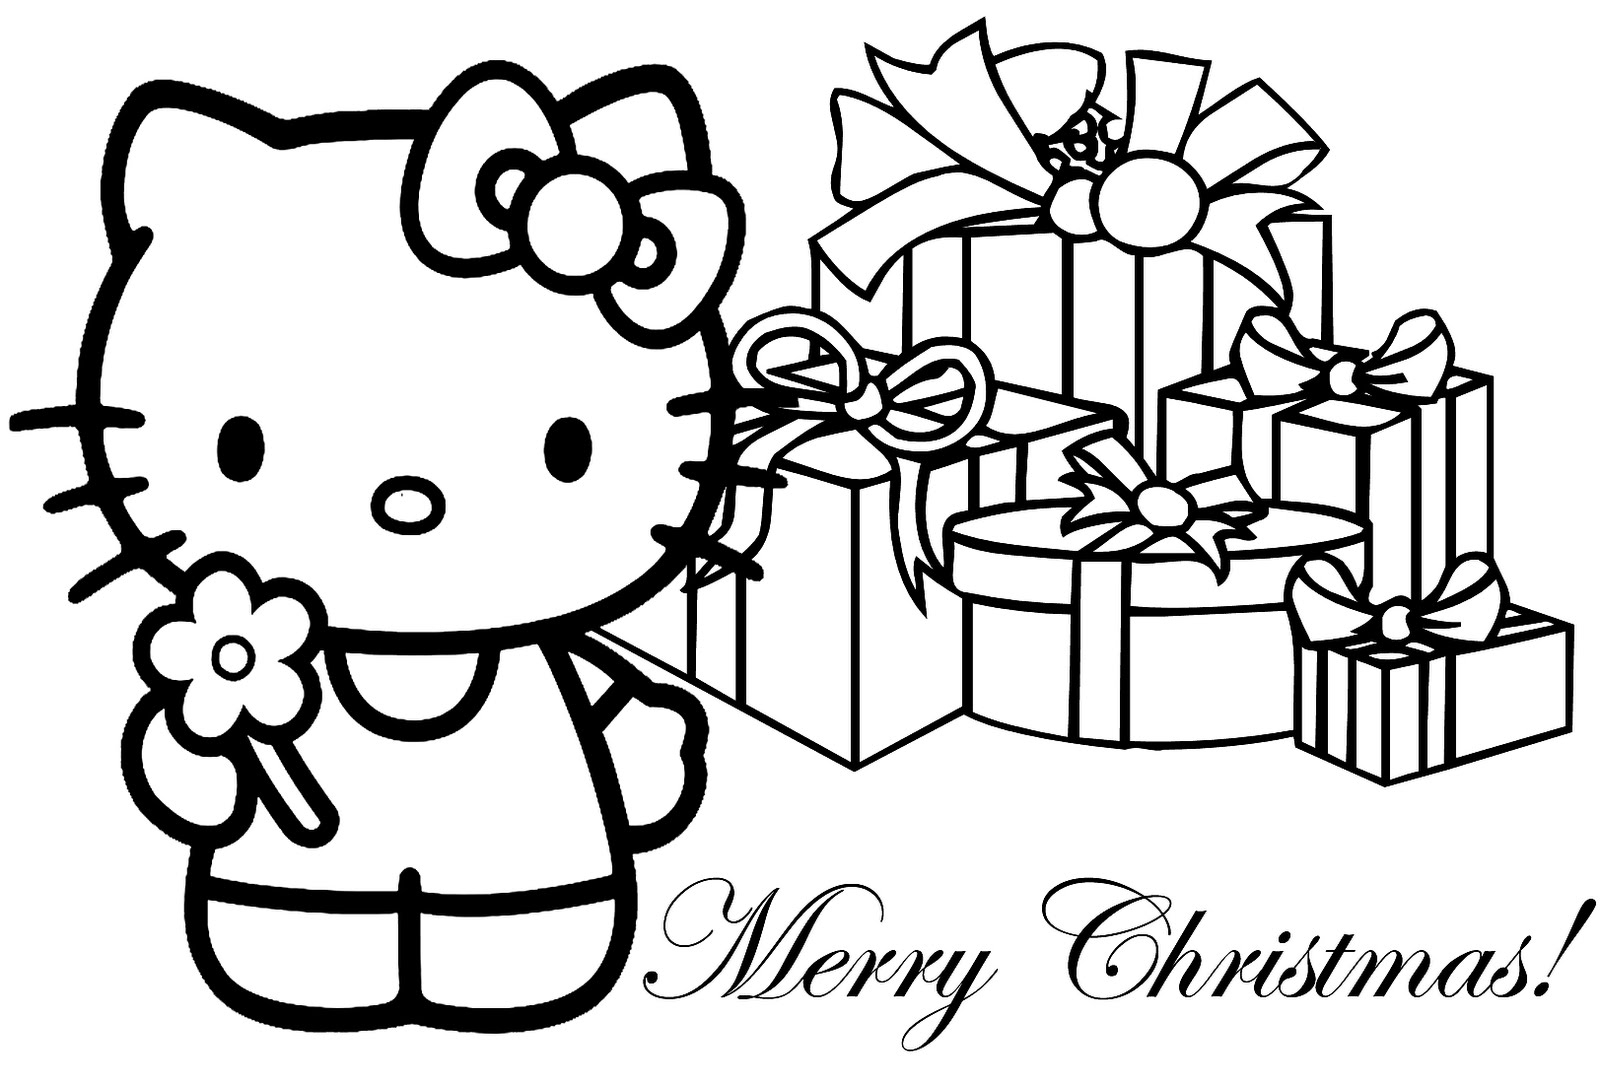 Christmas Color Pages For Kids Free Printable Merry Christmas Coloring Pages